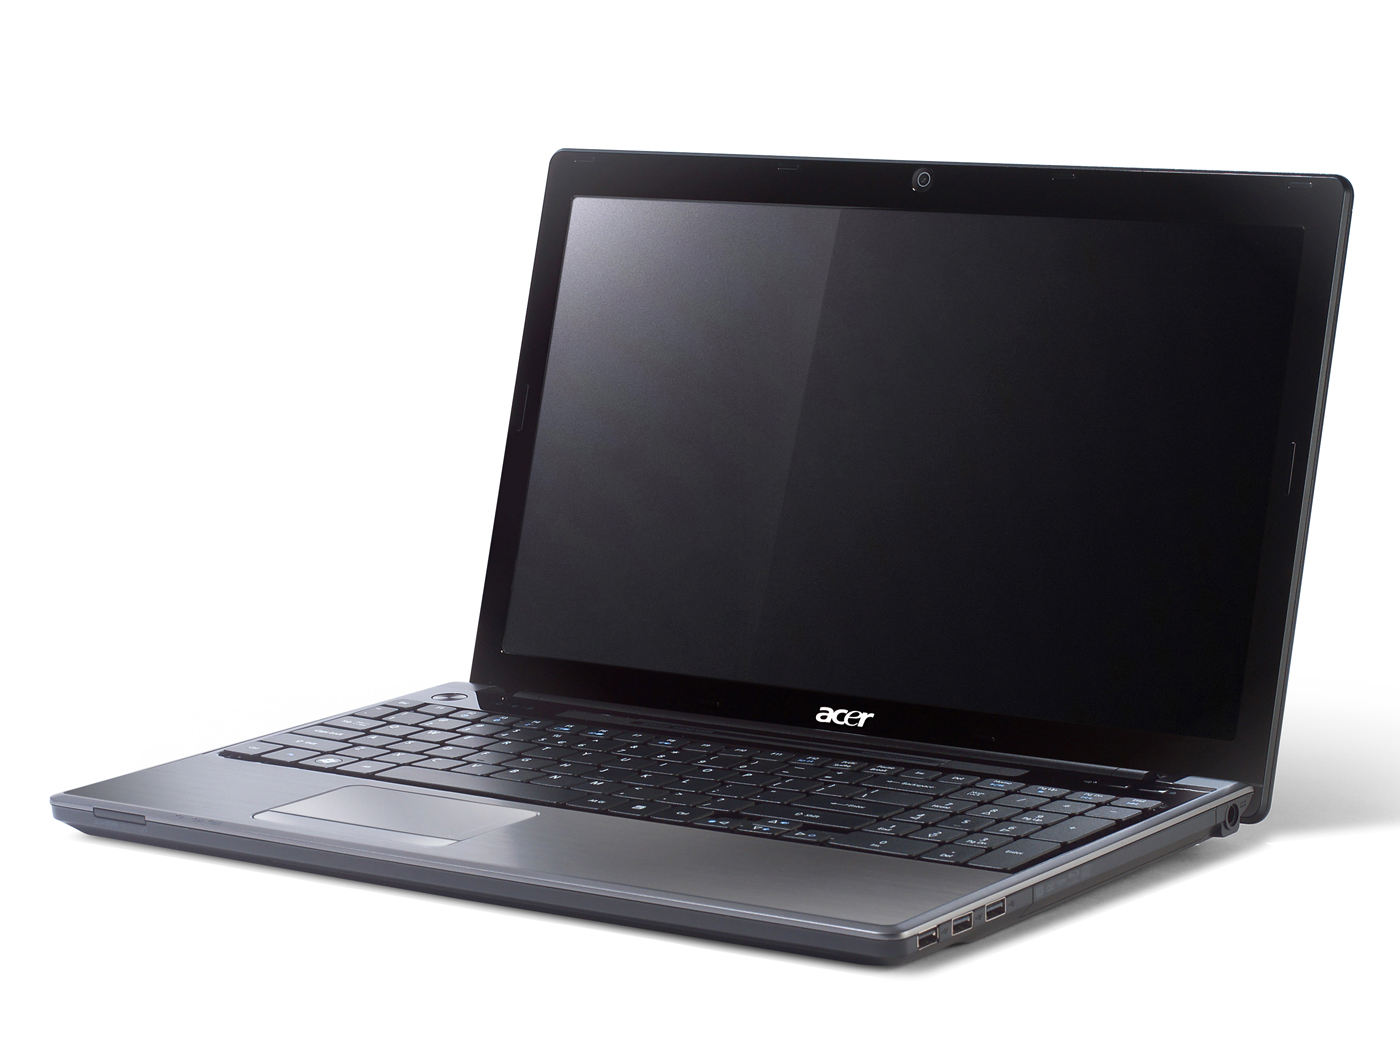 nbc onsite acer s notebook lineup 2010 notebookcheck net reviews rh notebookcheck net Stevens Point Buyer's Guide Buyer's Guide Classified Ads